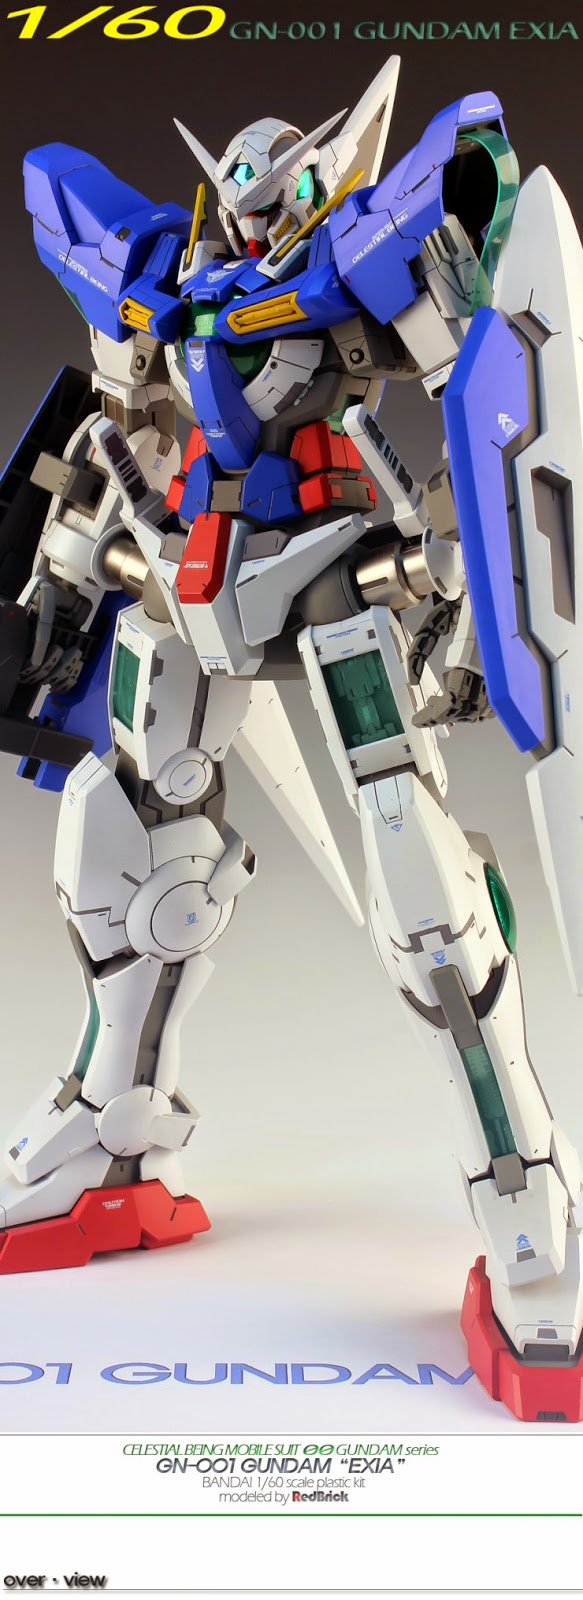 7e126d726ad GUNDAM GUY  1 60 GN-001 Gundam Exia - Customized Build